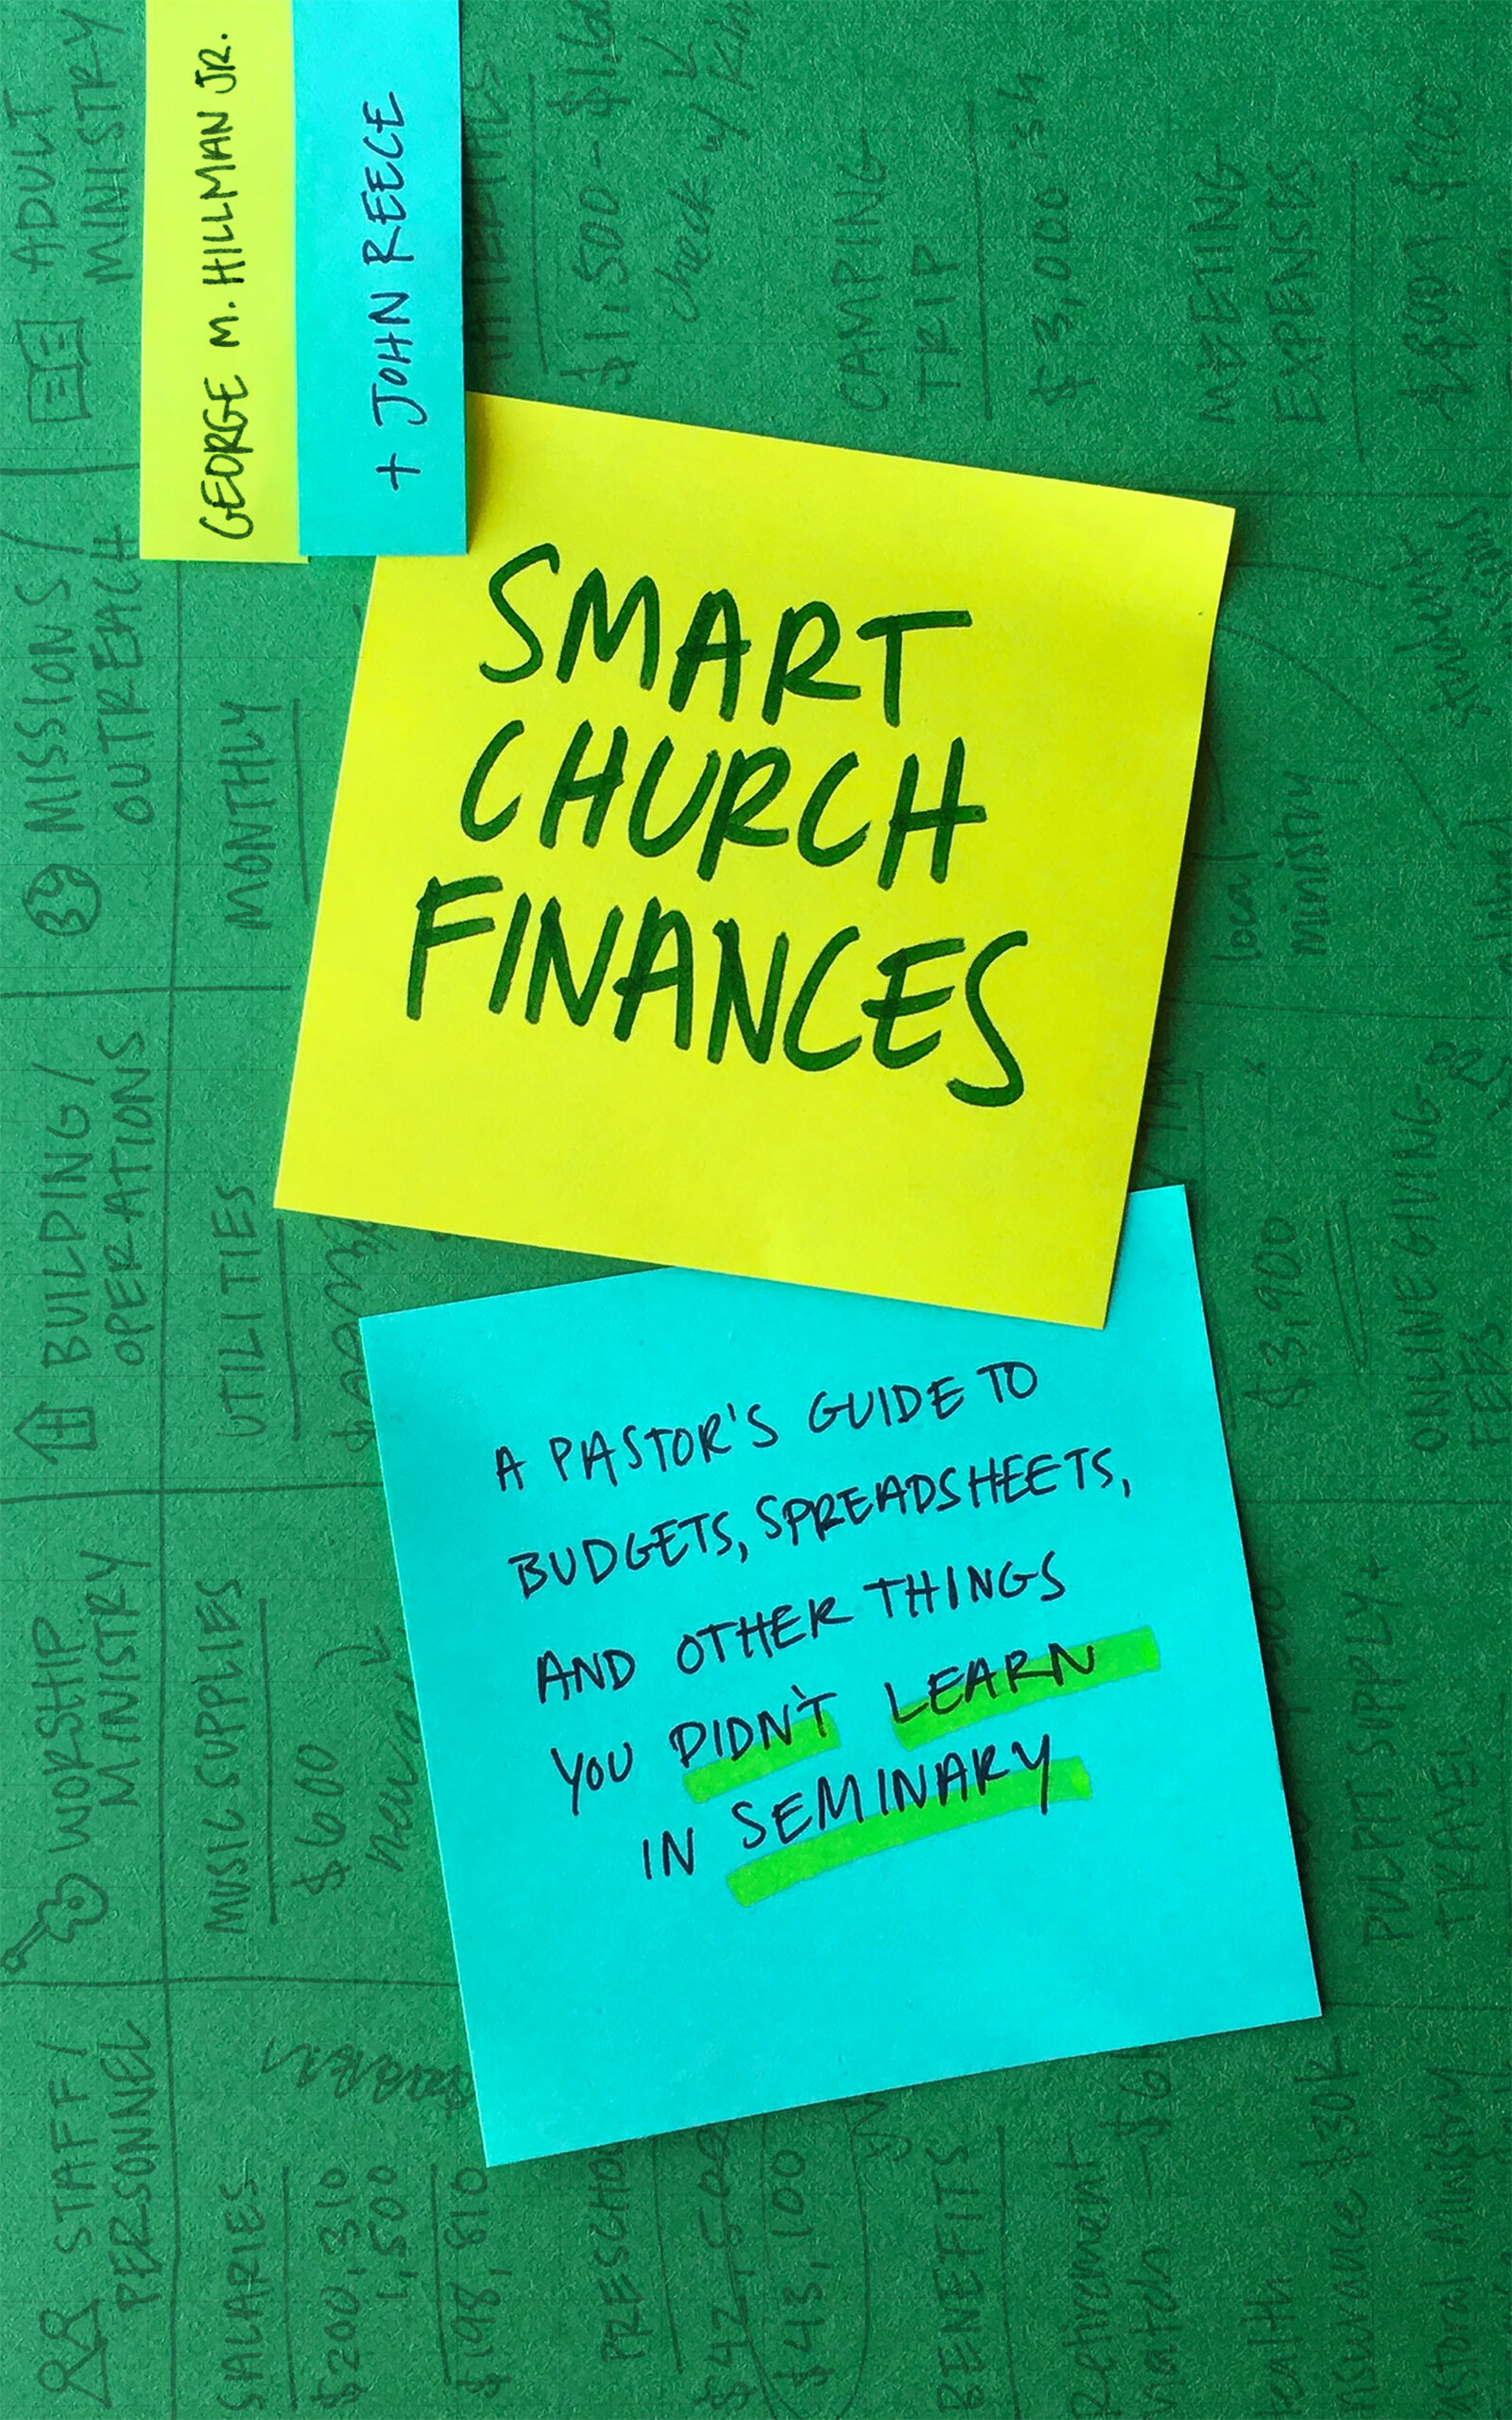 Smart Church Finances: A Pastor's Guide to Budgets, Spreadsheets, and Other Things You Didn't Learn in Seminary